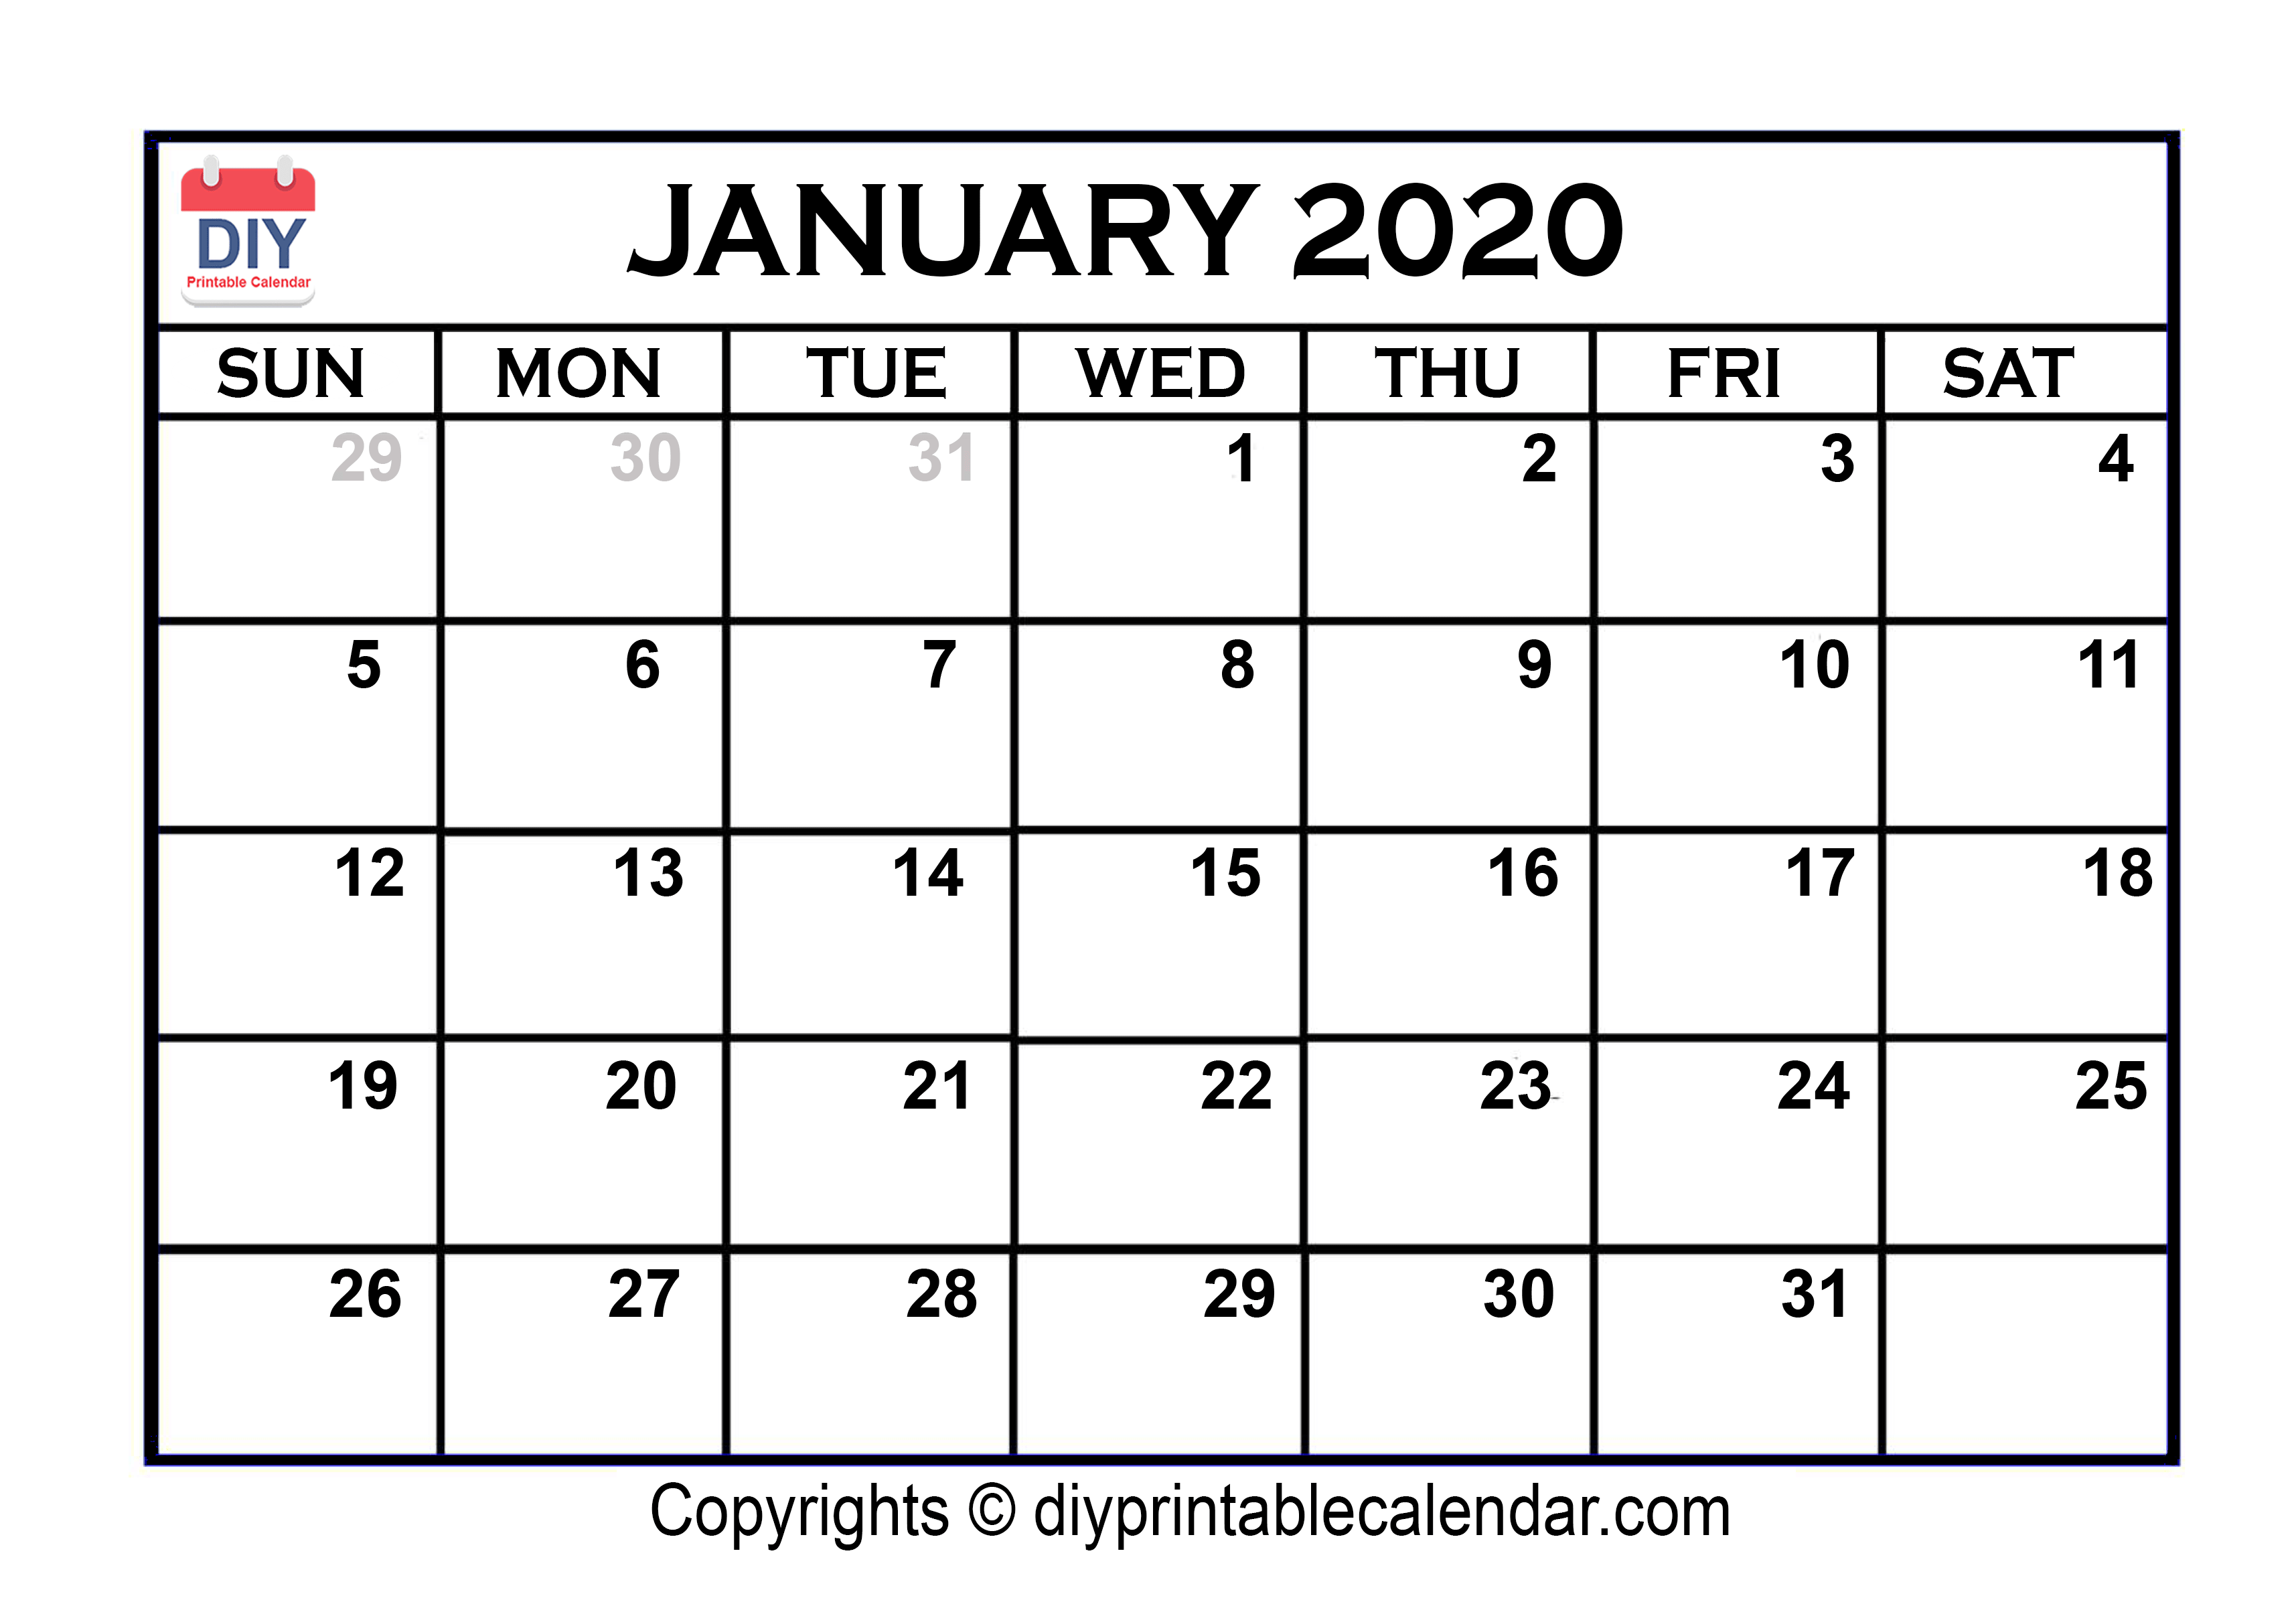 photo regarding January Calendar Printable called January 2020 Printable Calendar Template